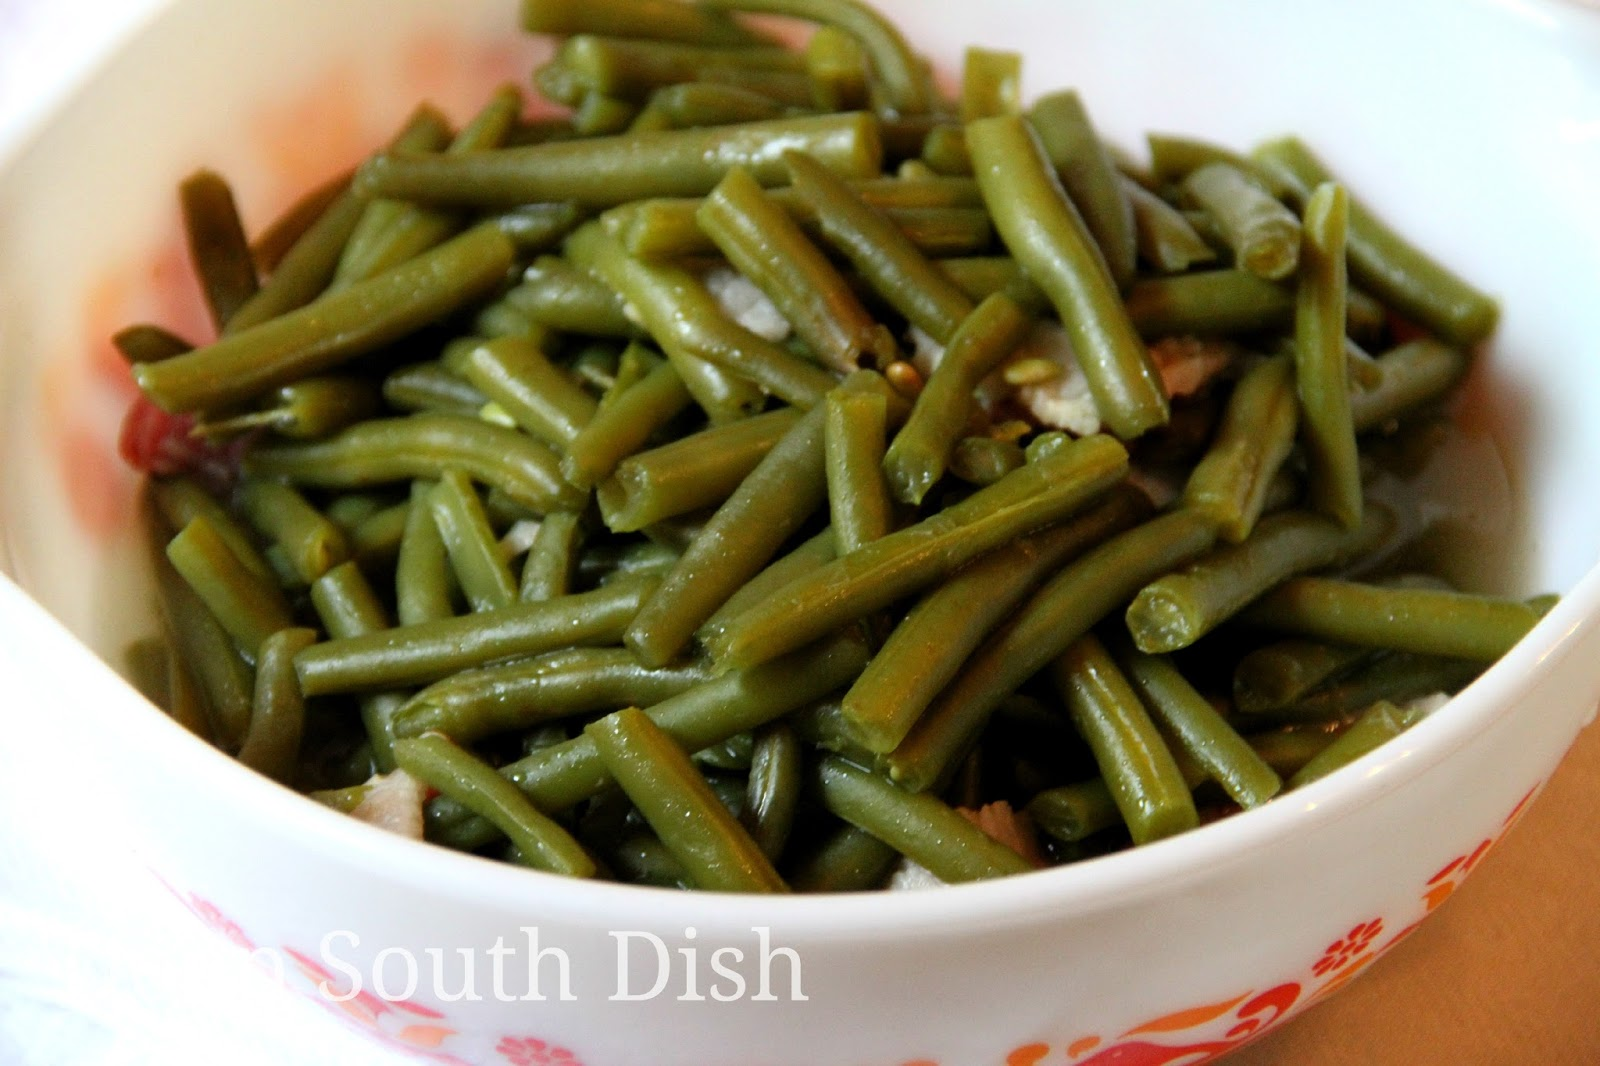 Deep South DishOld Fashioned Slow Stewed Southern Green Beans